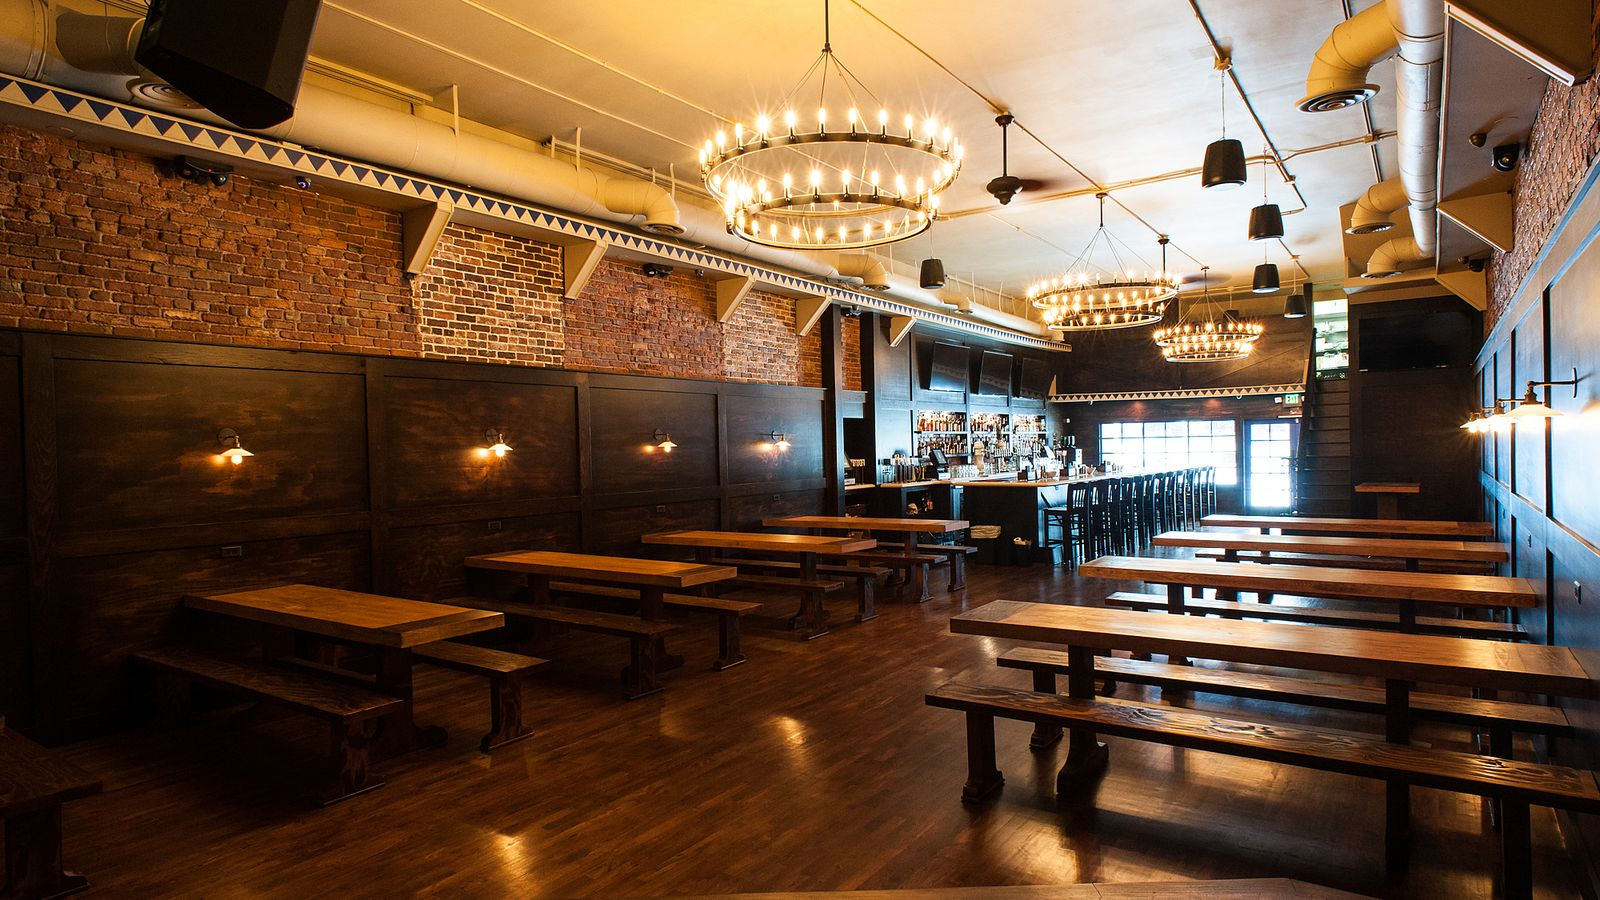 The 10 Best Bars In The Heart Of Pasadena, California